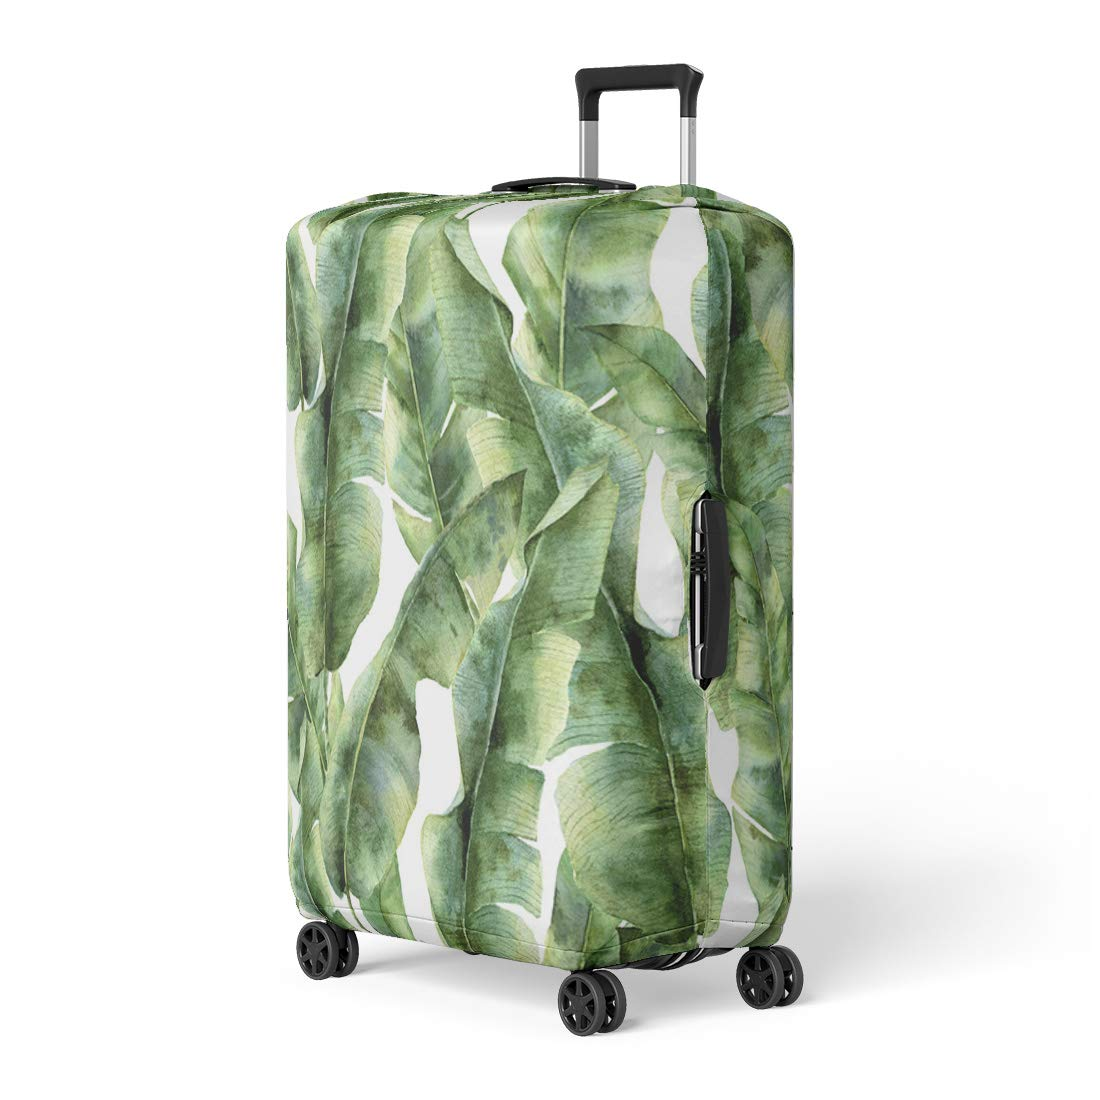 Pinbeam Luggage Cover Watercolor Pattern Banana Palm Leaves Hand Exotic Greenery Travel Suitcase Cover Protector Baggage Case Fits 18-22 inches